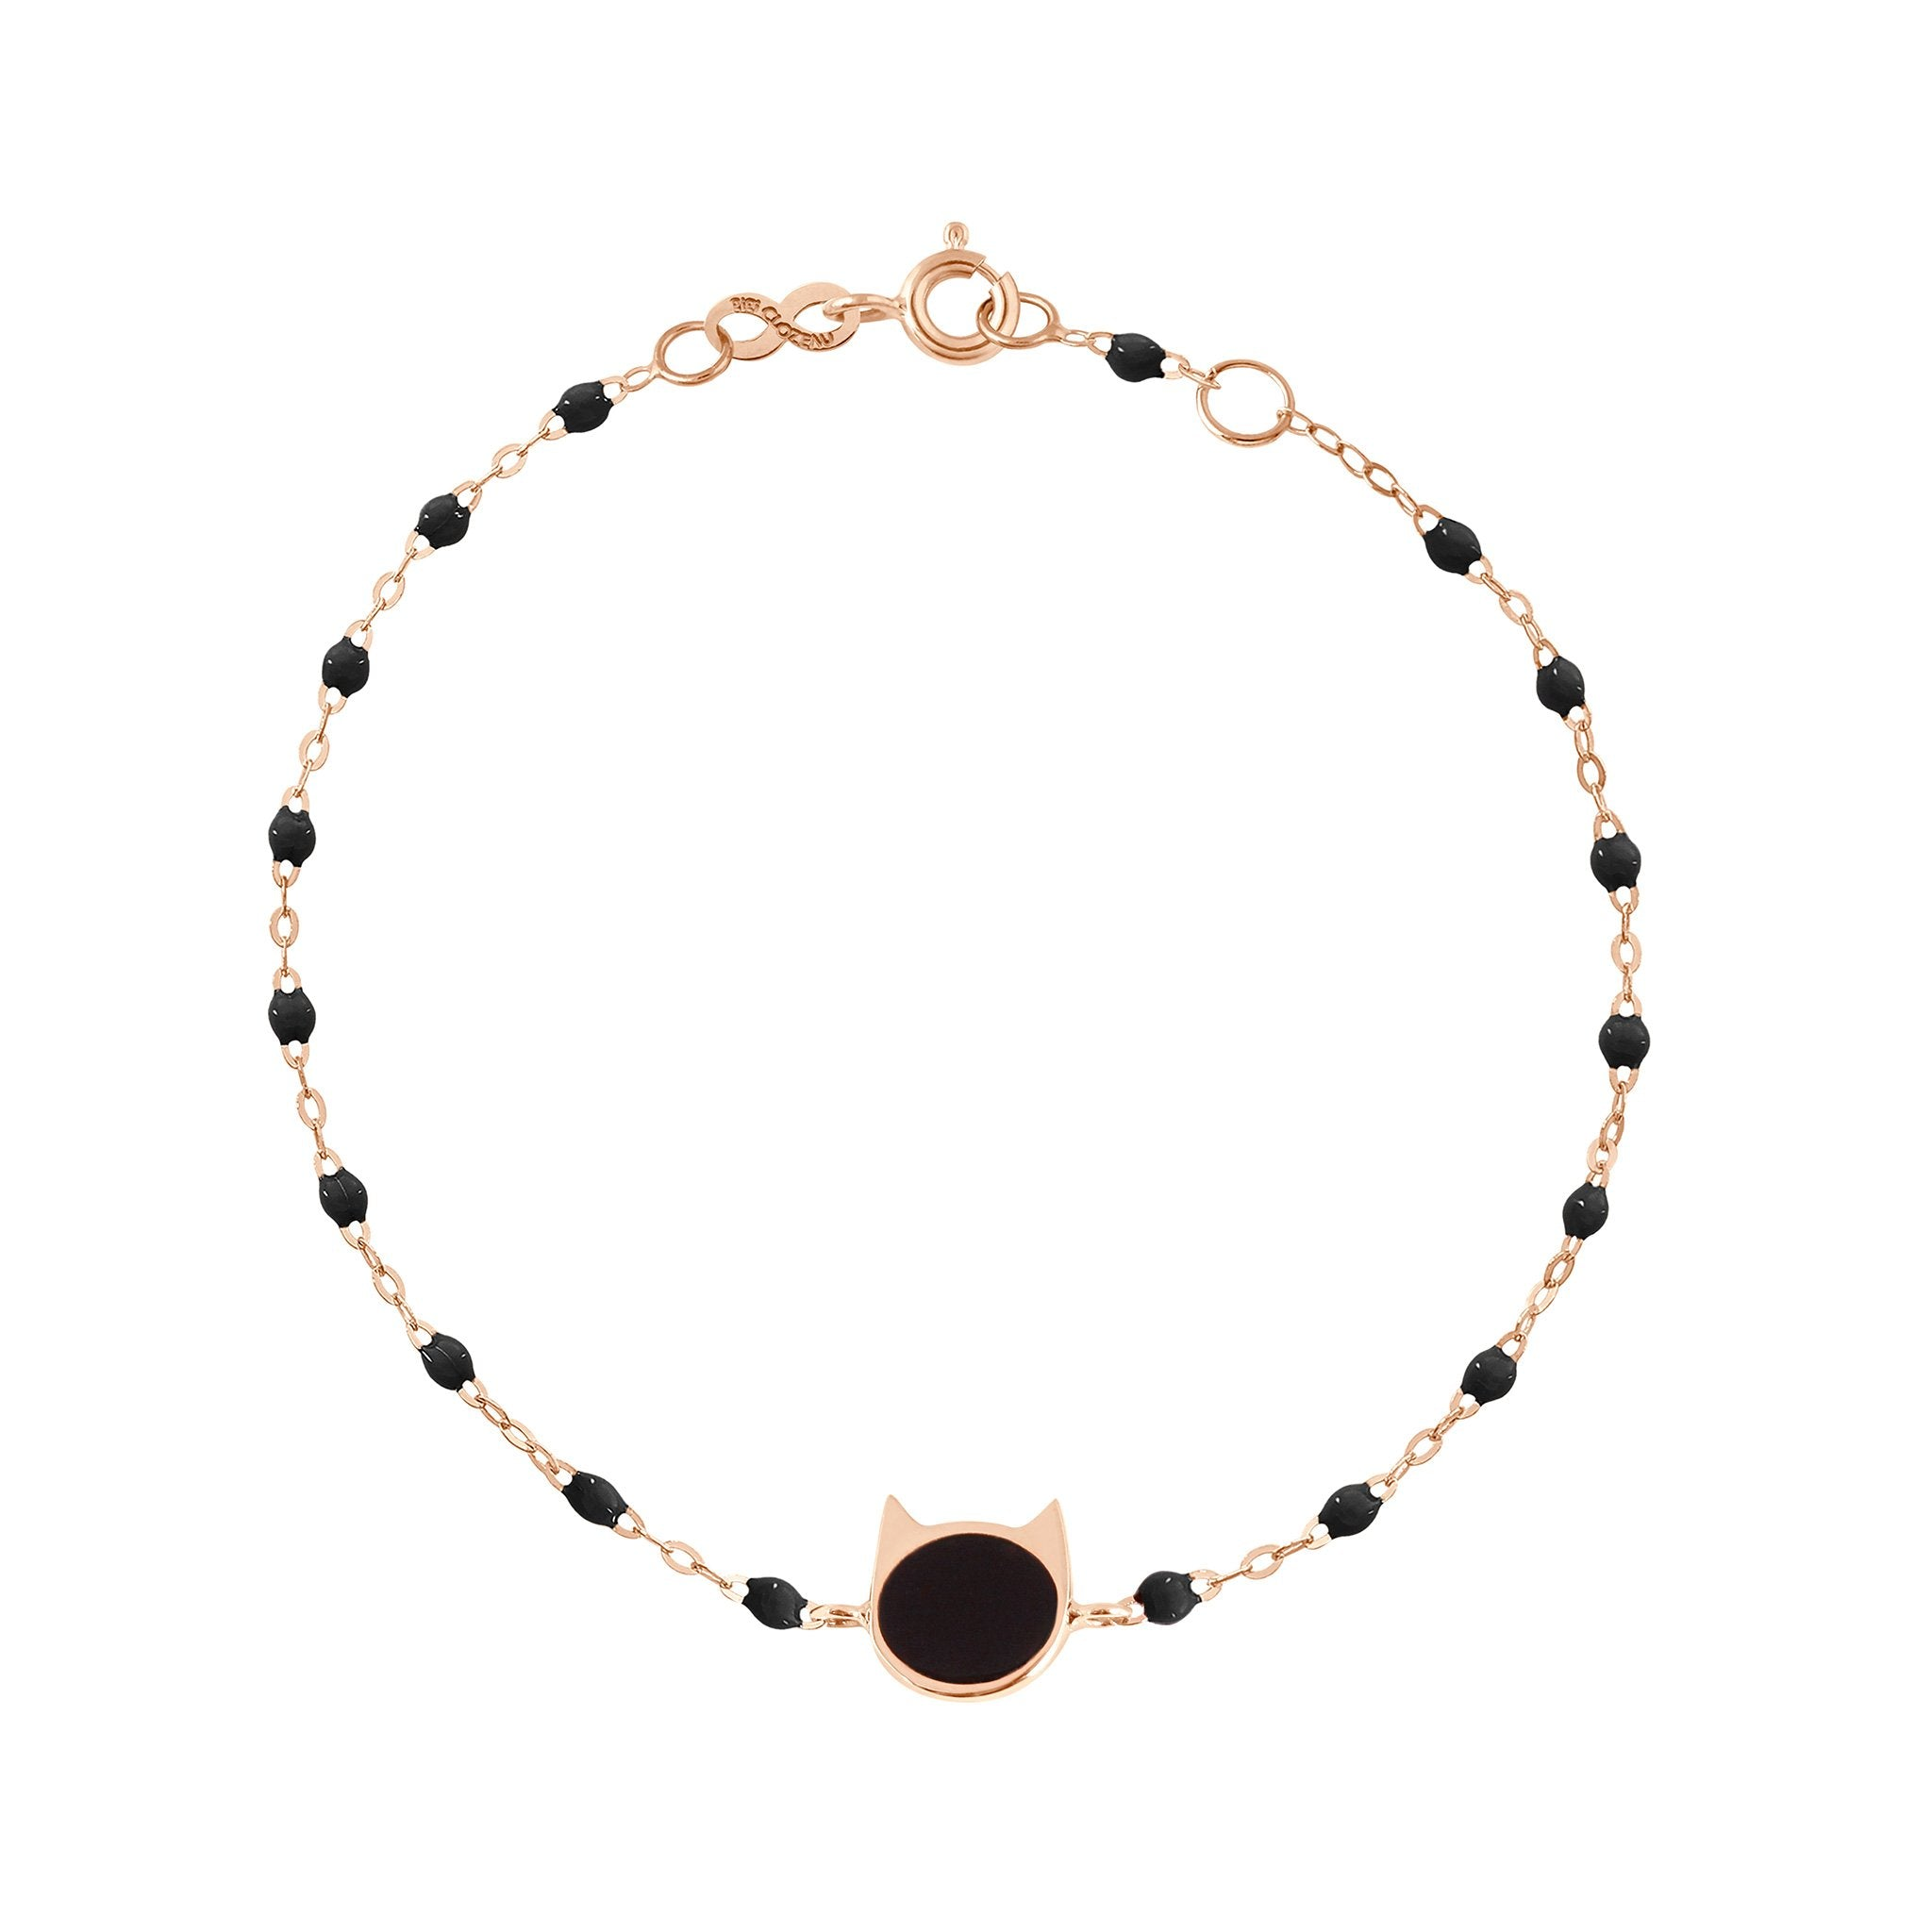 Gigi Clozeau - Bracelet noir Chat or rose, 17 cm